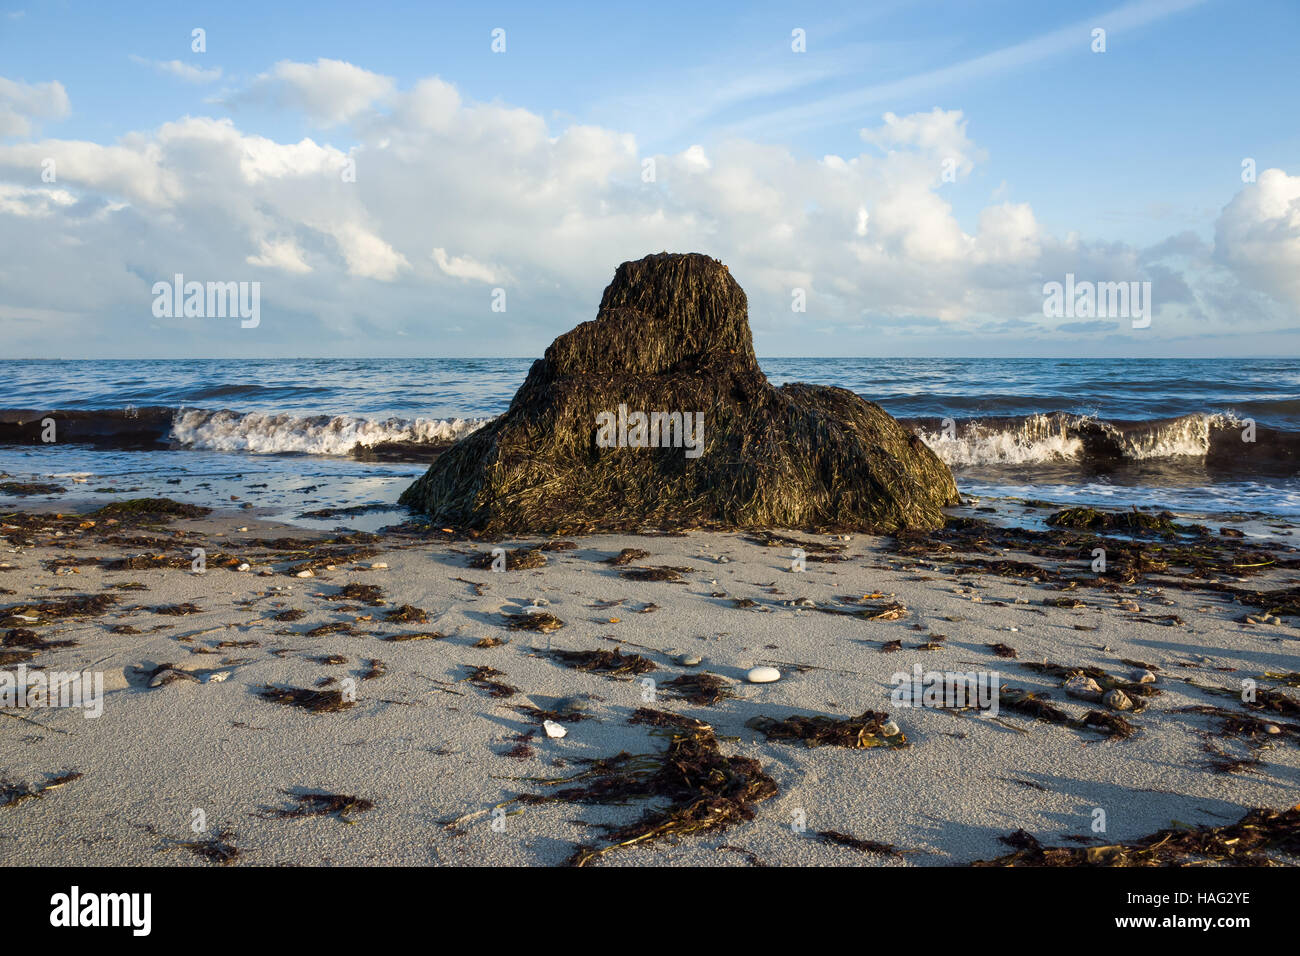 Seagrass At Beach In Denmark - Stock Image